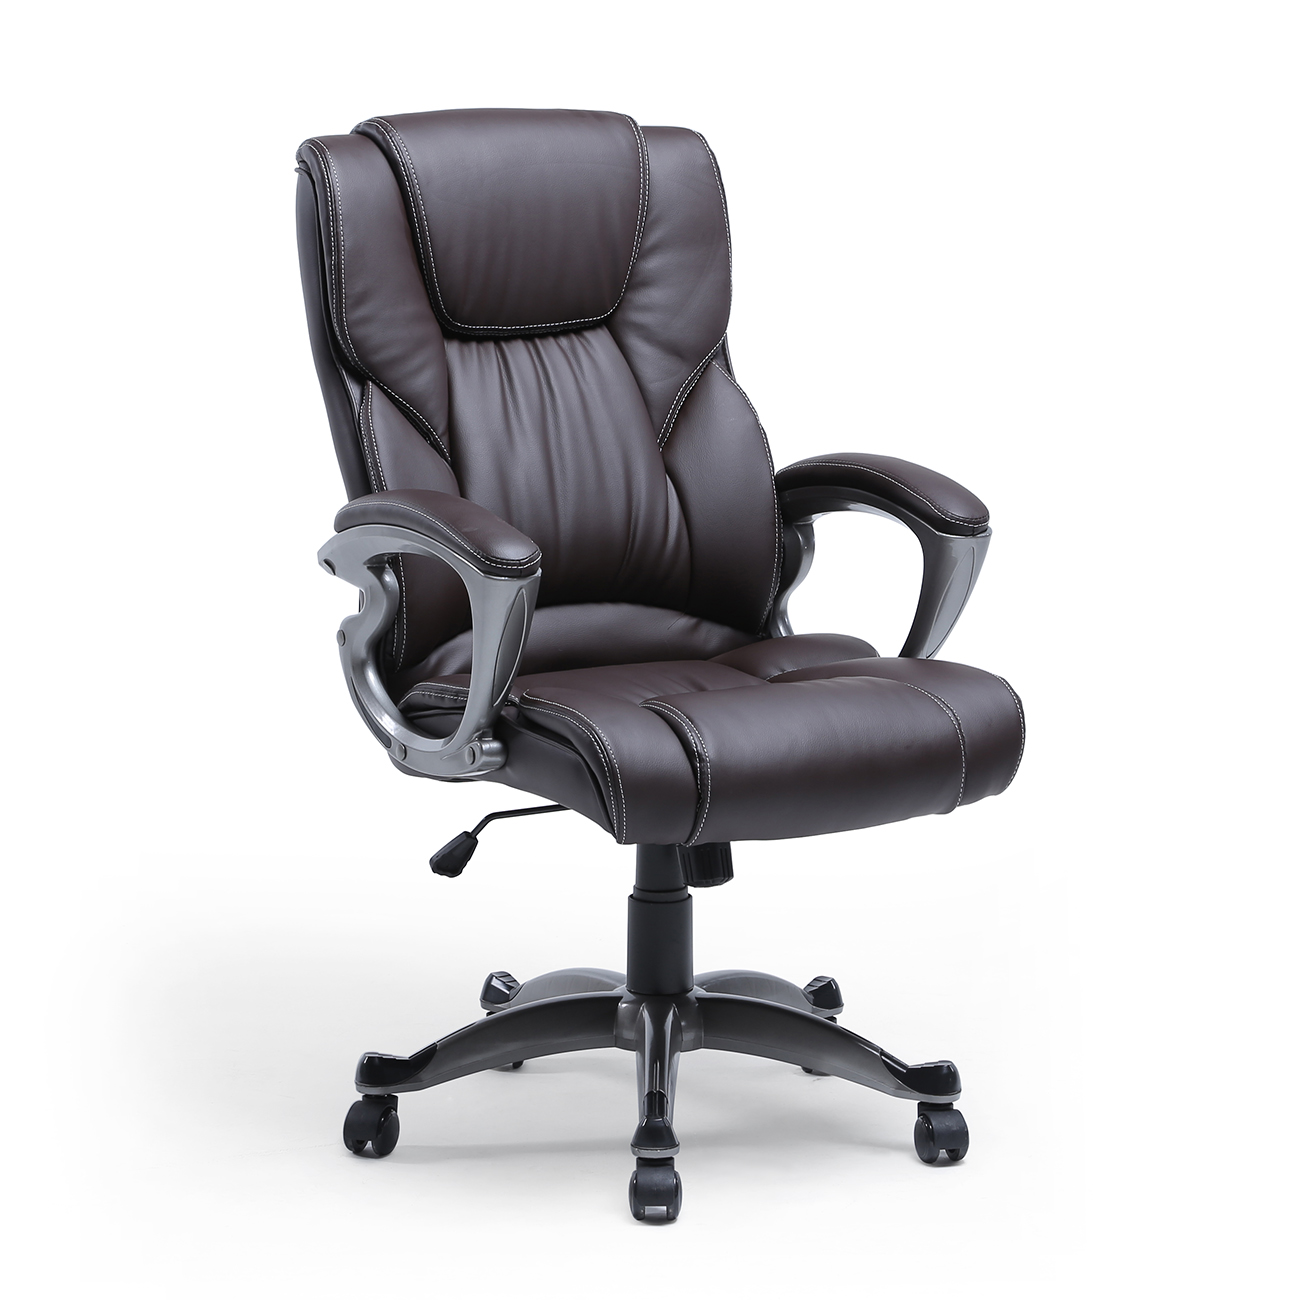 Black Desk Chair High Back Pu Leather Executive Ergonomic Office Chair Desk